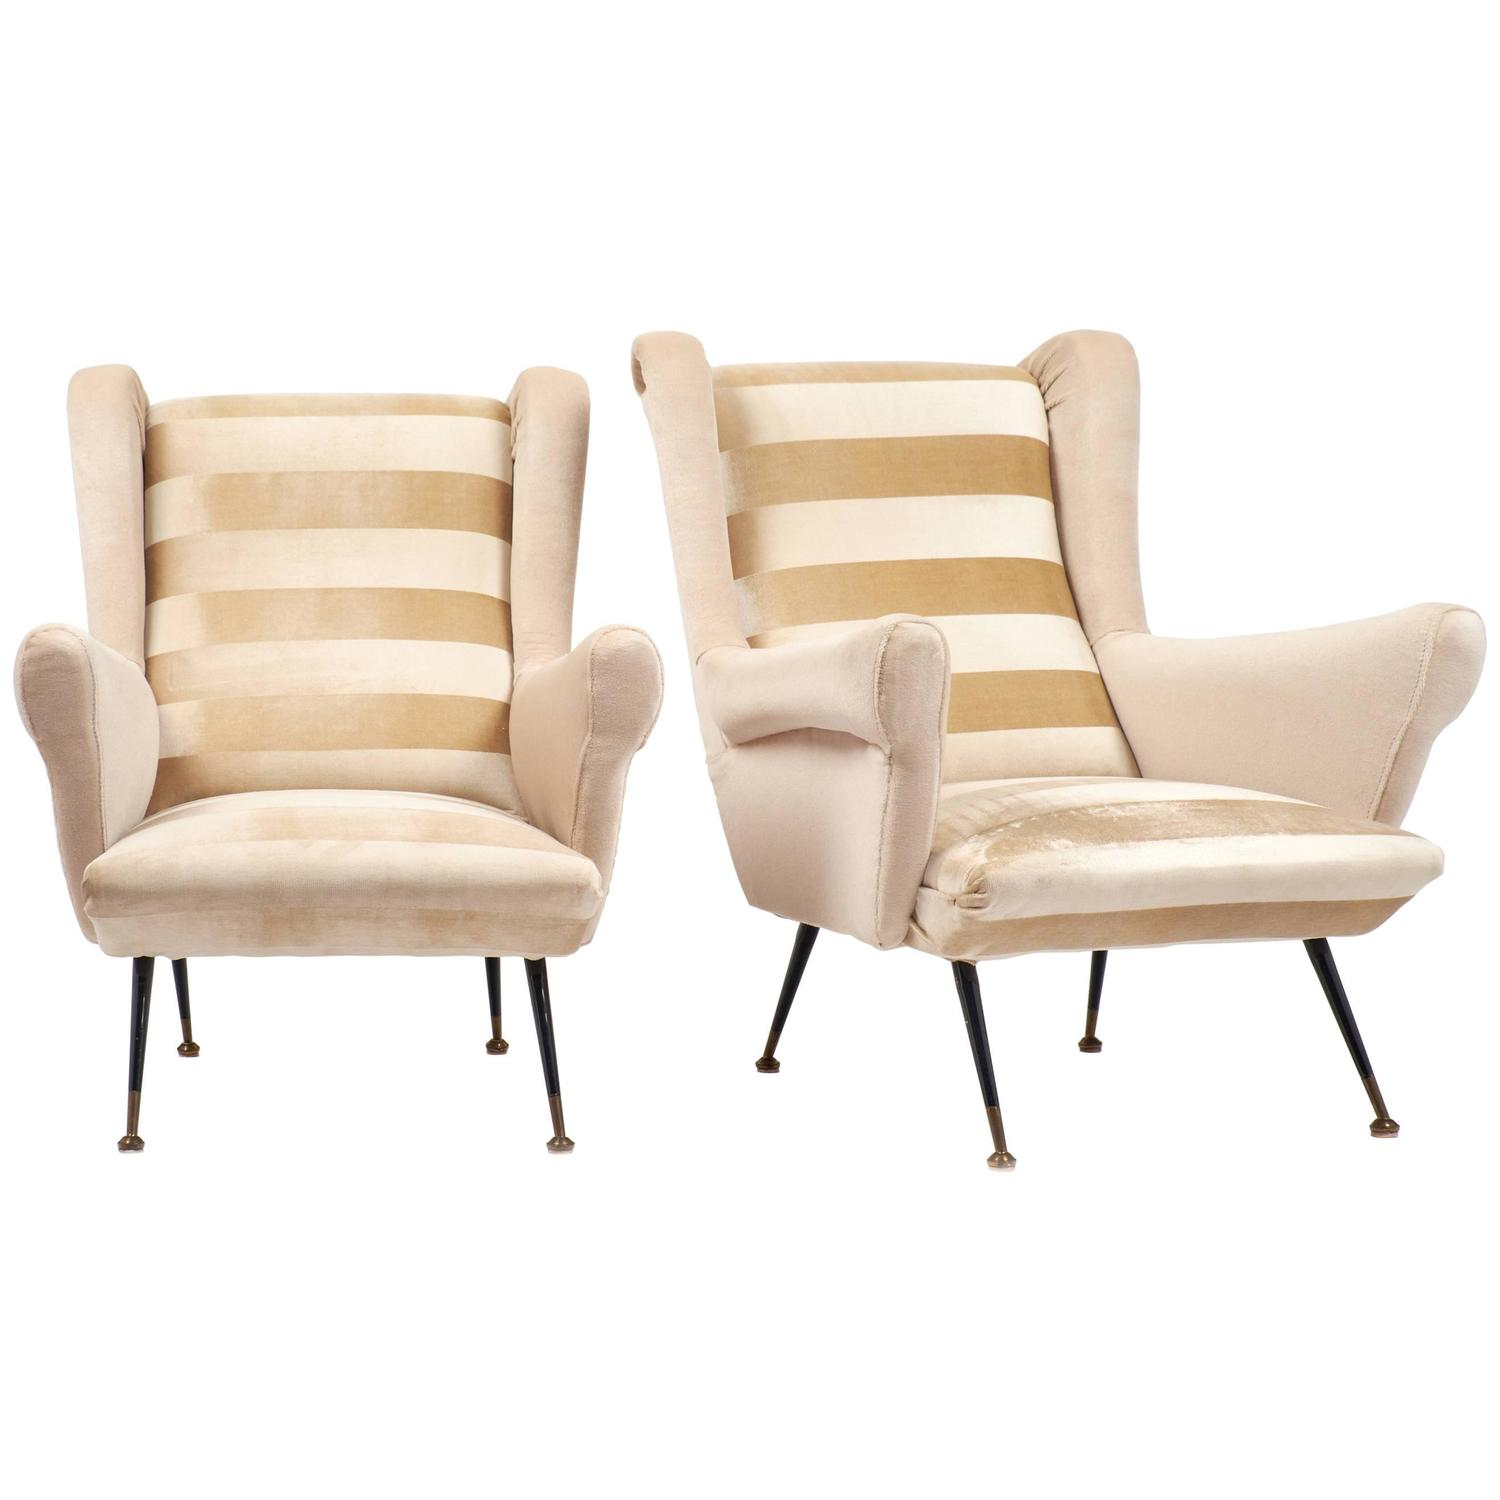 Italian Mid Century Modern Striped Velvet Armchairs For Sale At 1stdibs